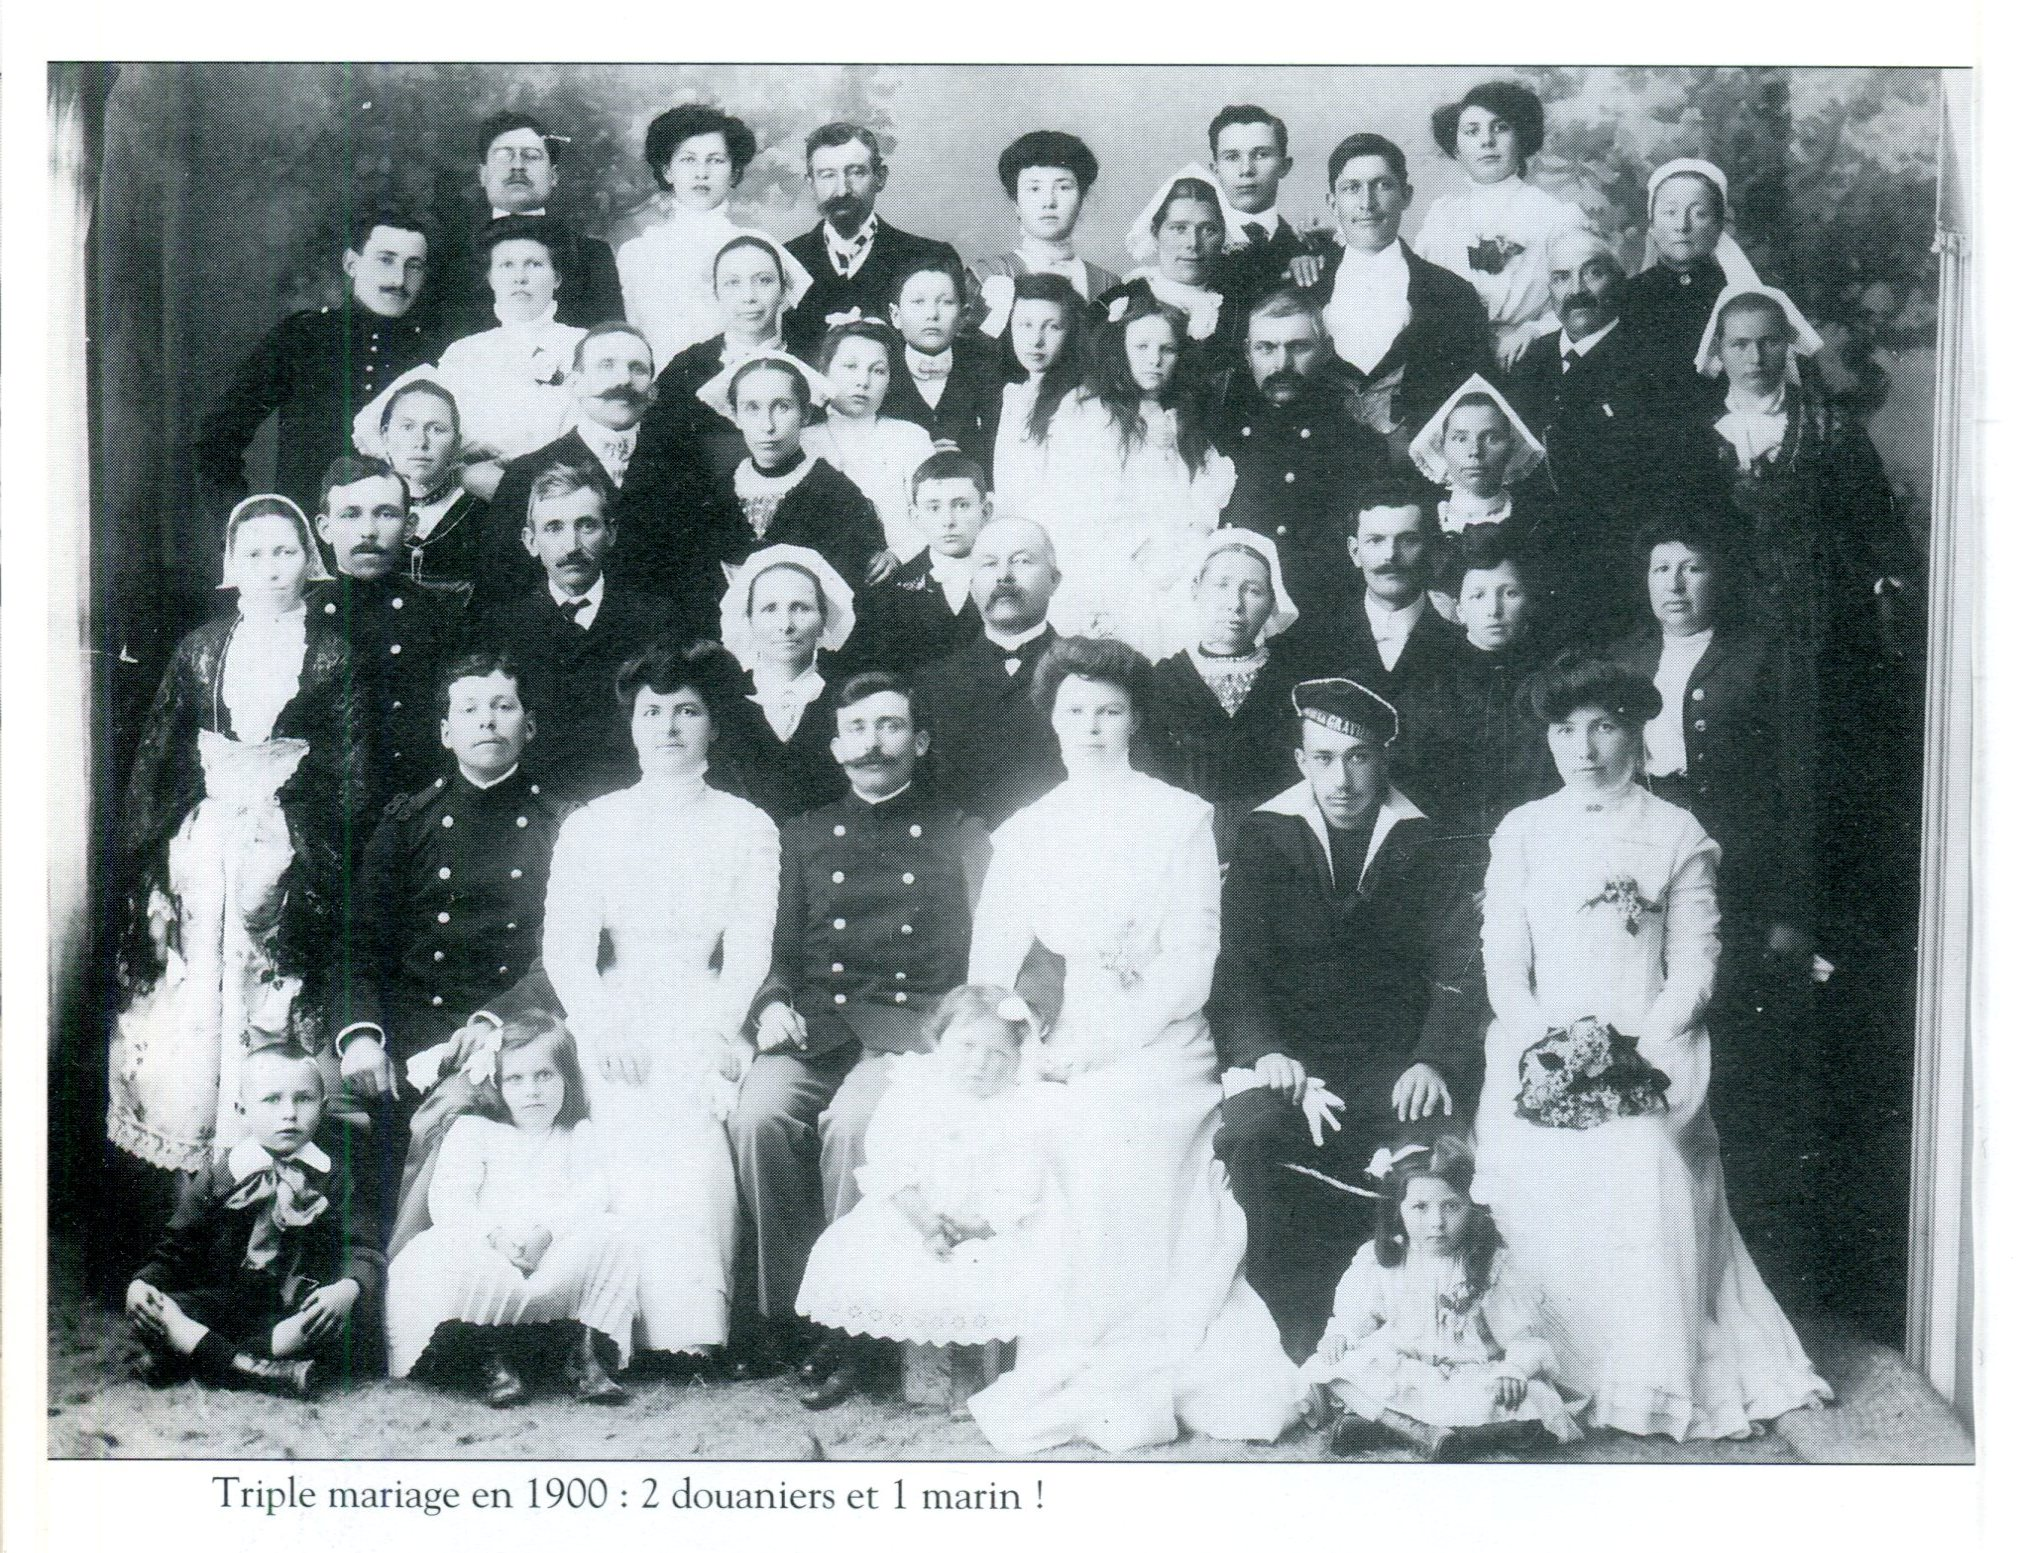 1900 noces 2 douaniers 1 marin